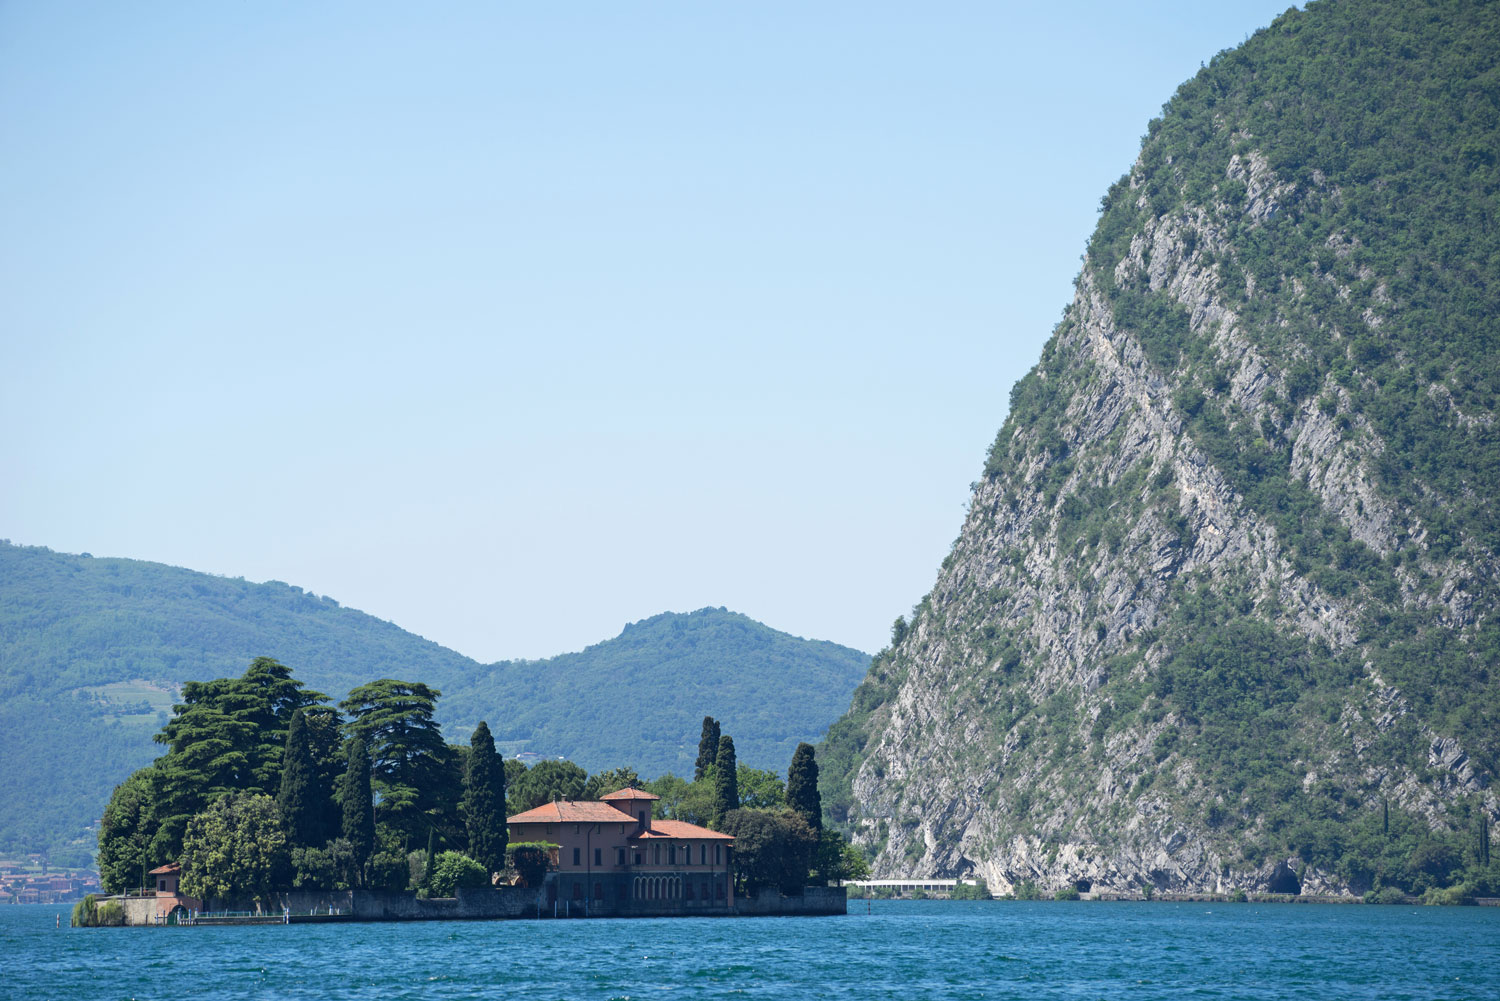 The island of San Paolo, Lake Iseo